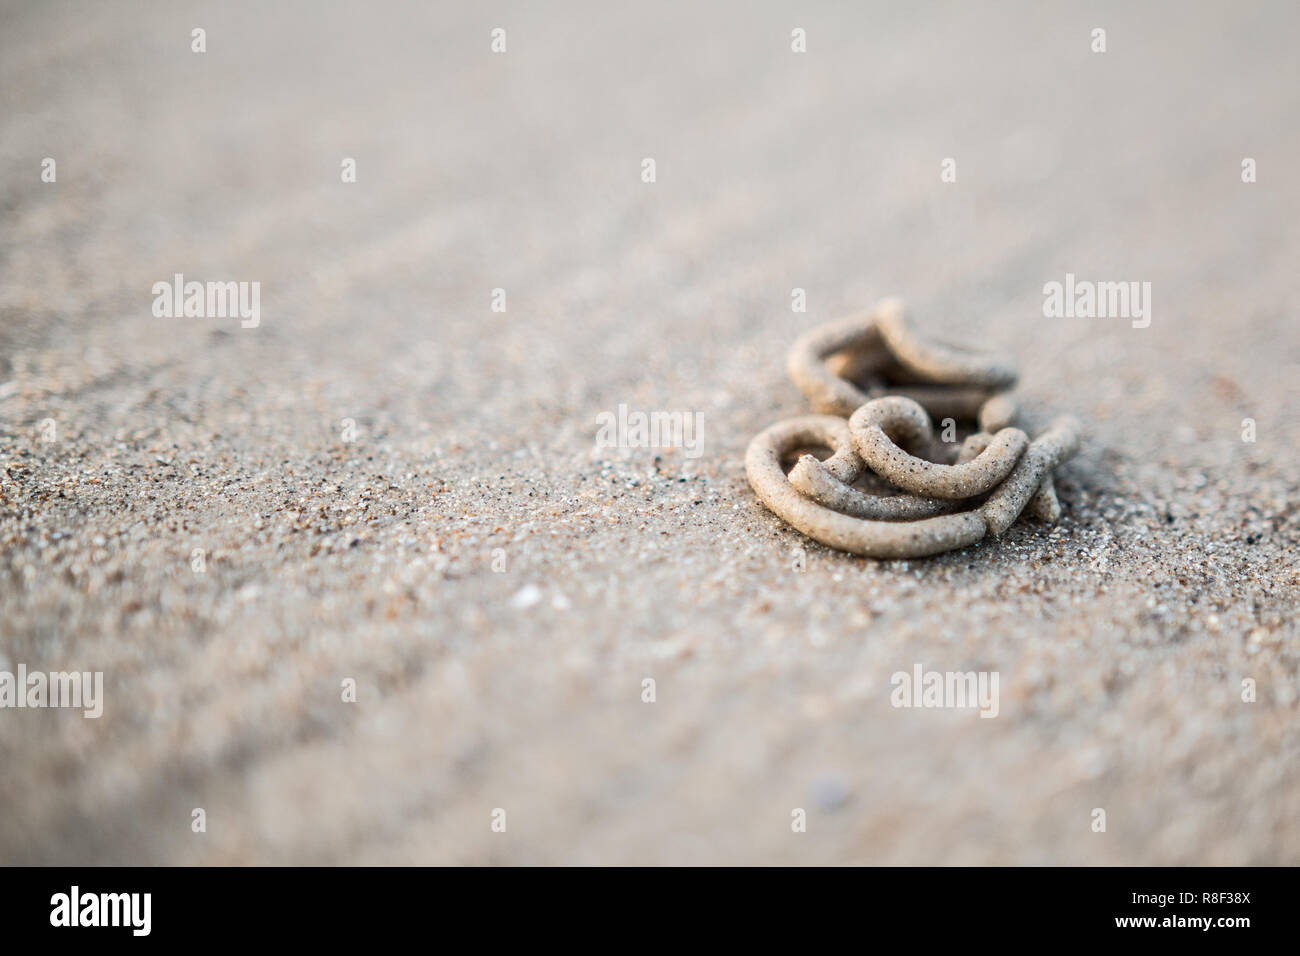 Close up of a lugworm cast in the sand on a beach - Stock Image